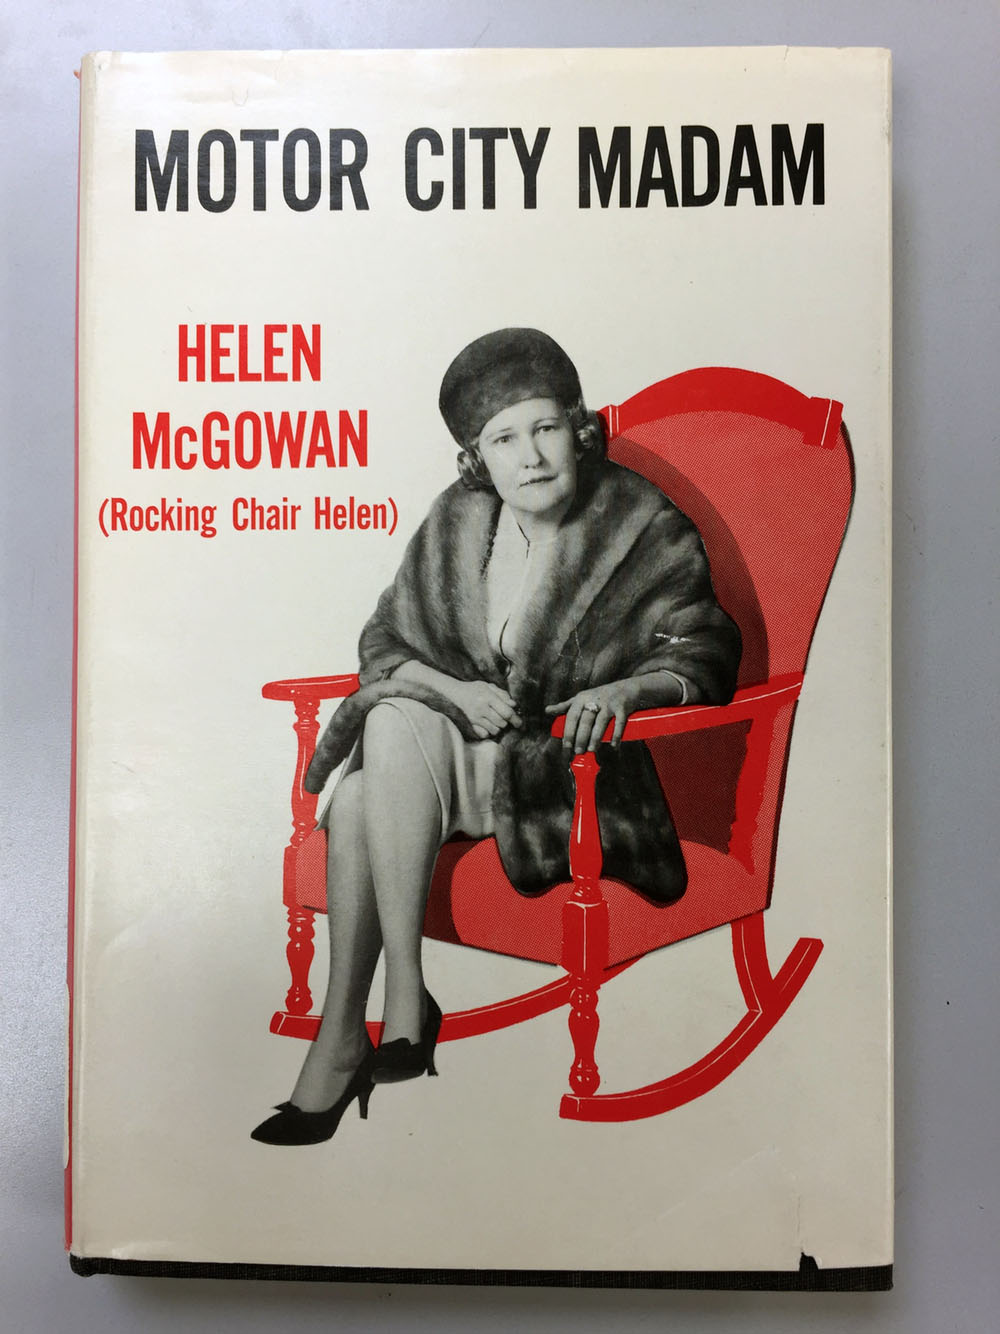 Motor City Madam book